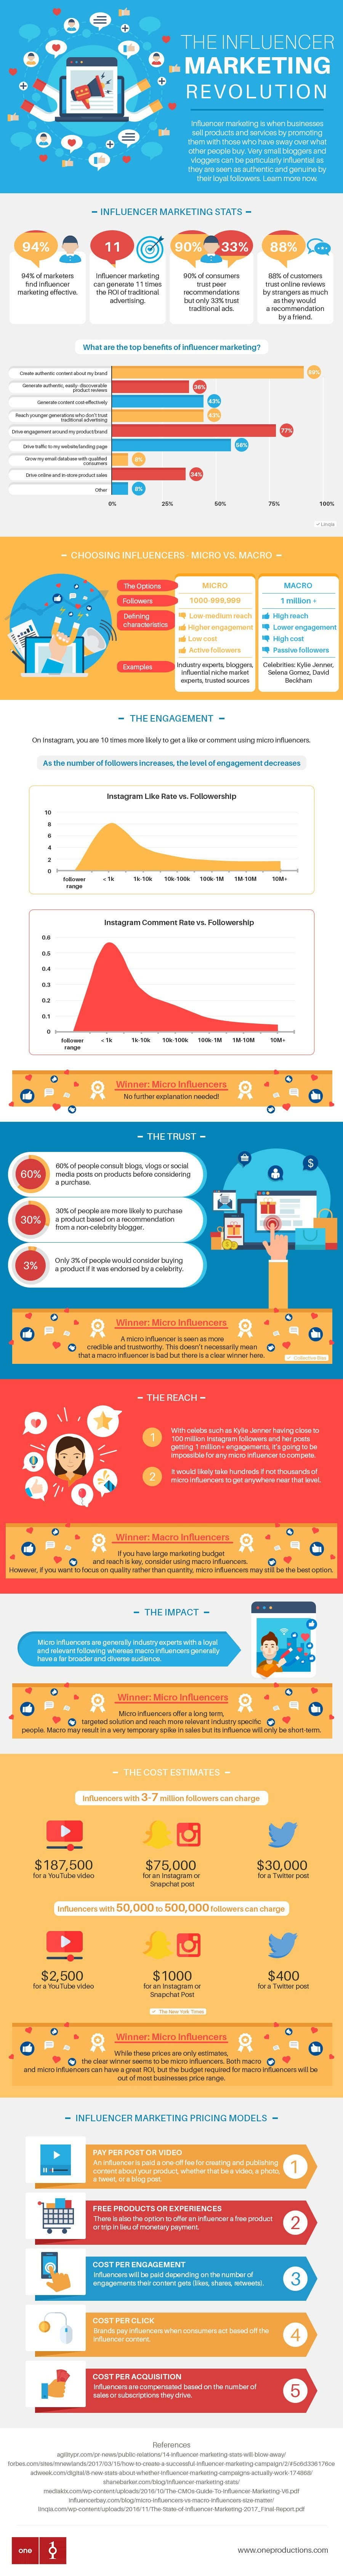 The Influencer Marketing Revolution - #infographic